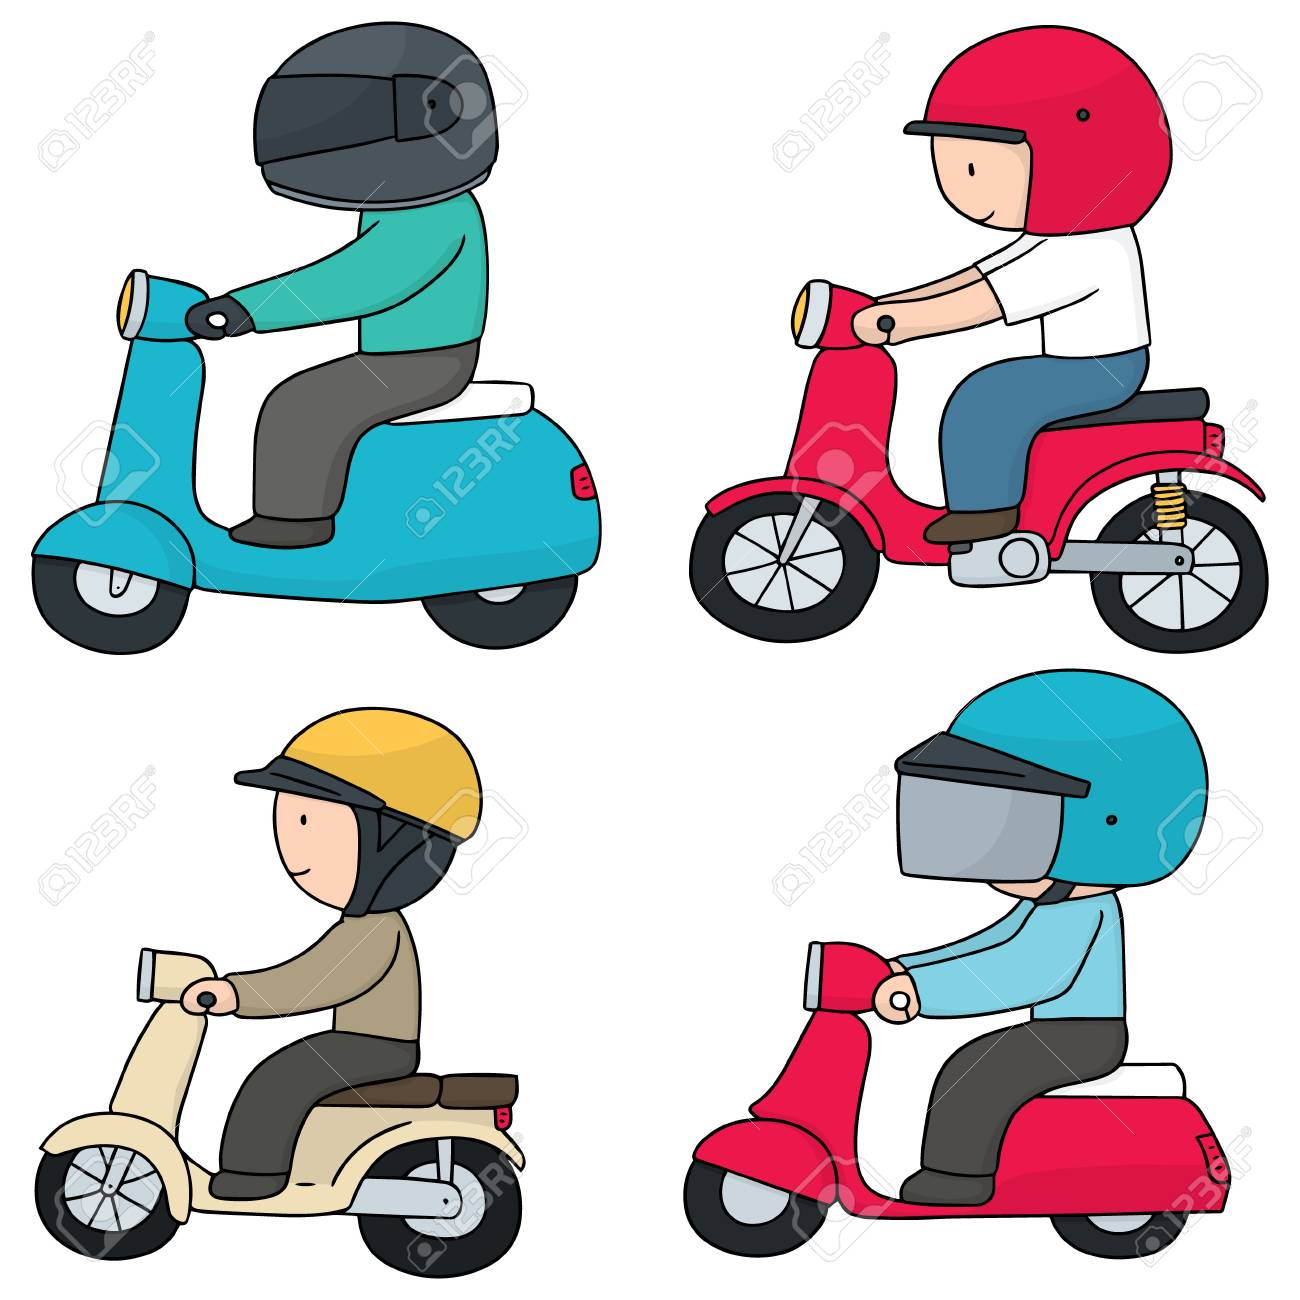 vector set of riding motorcycle - 60829846